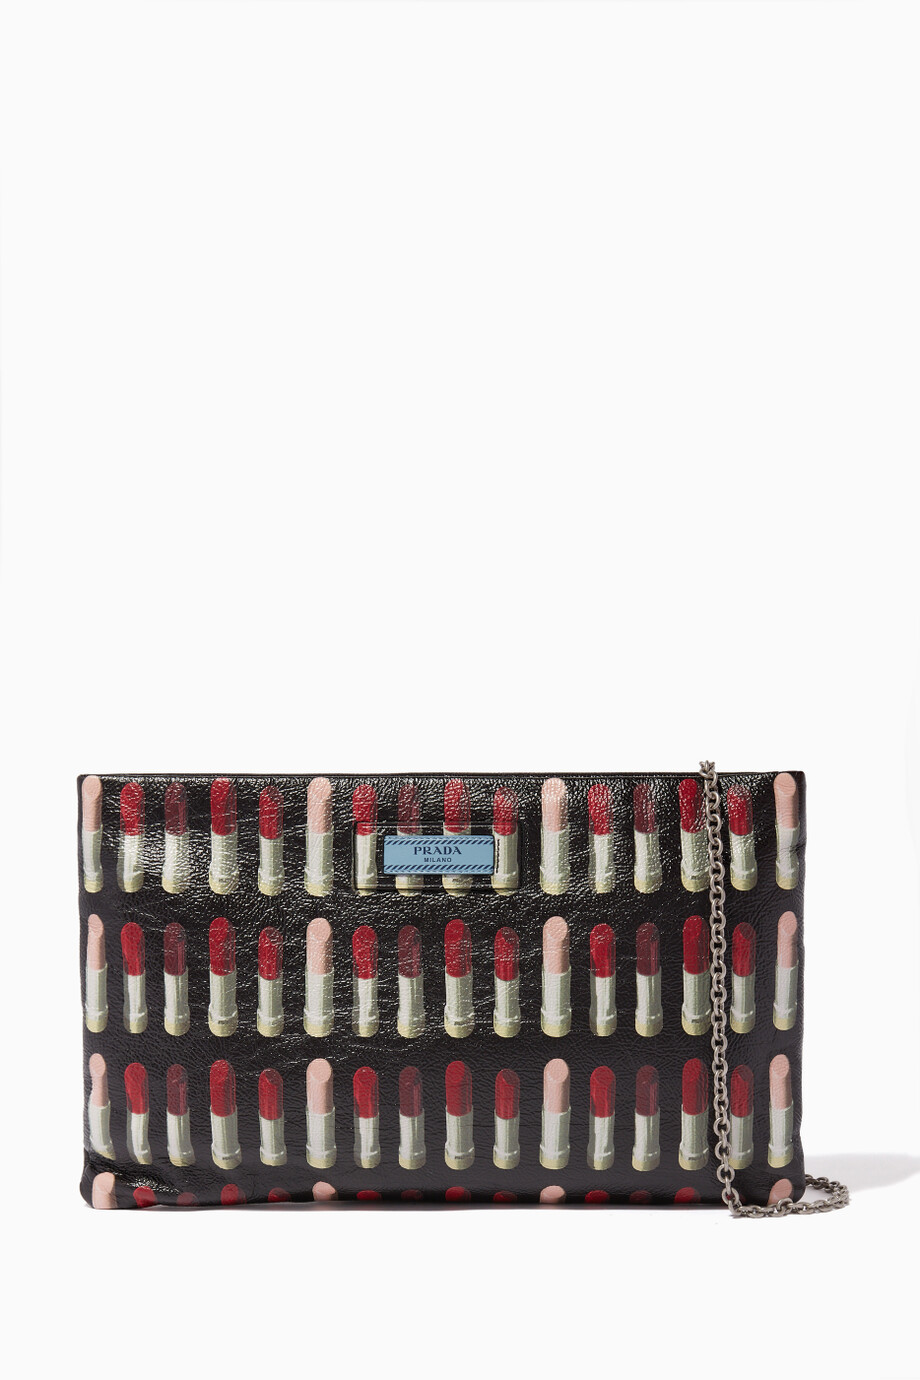 991728455fe6 Shop Prada Black Black Iconic Lipstick Print Leather Clutch for ...